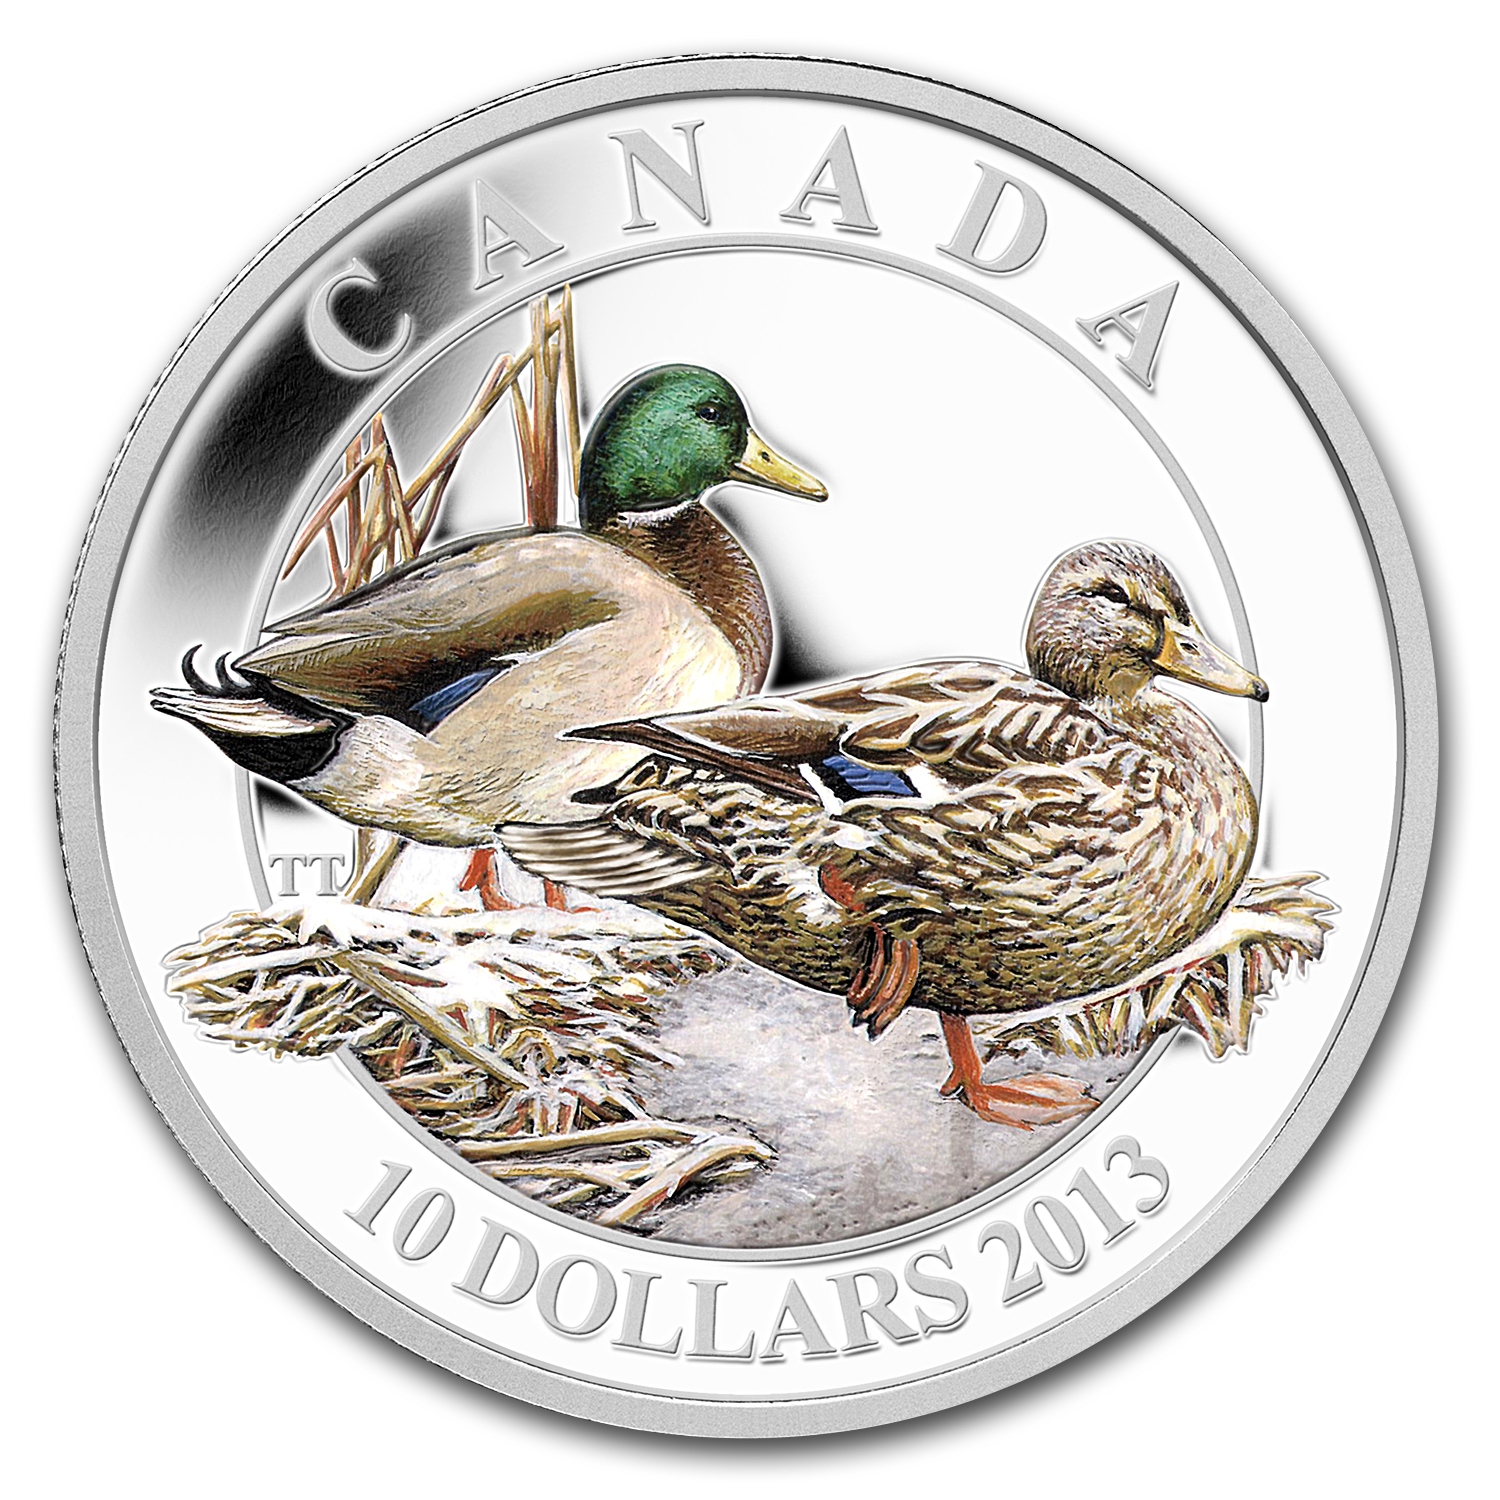 2013 1/2 oz Silver Canadian $10 Ducks of Canada (Mallard)